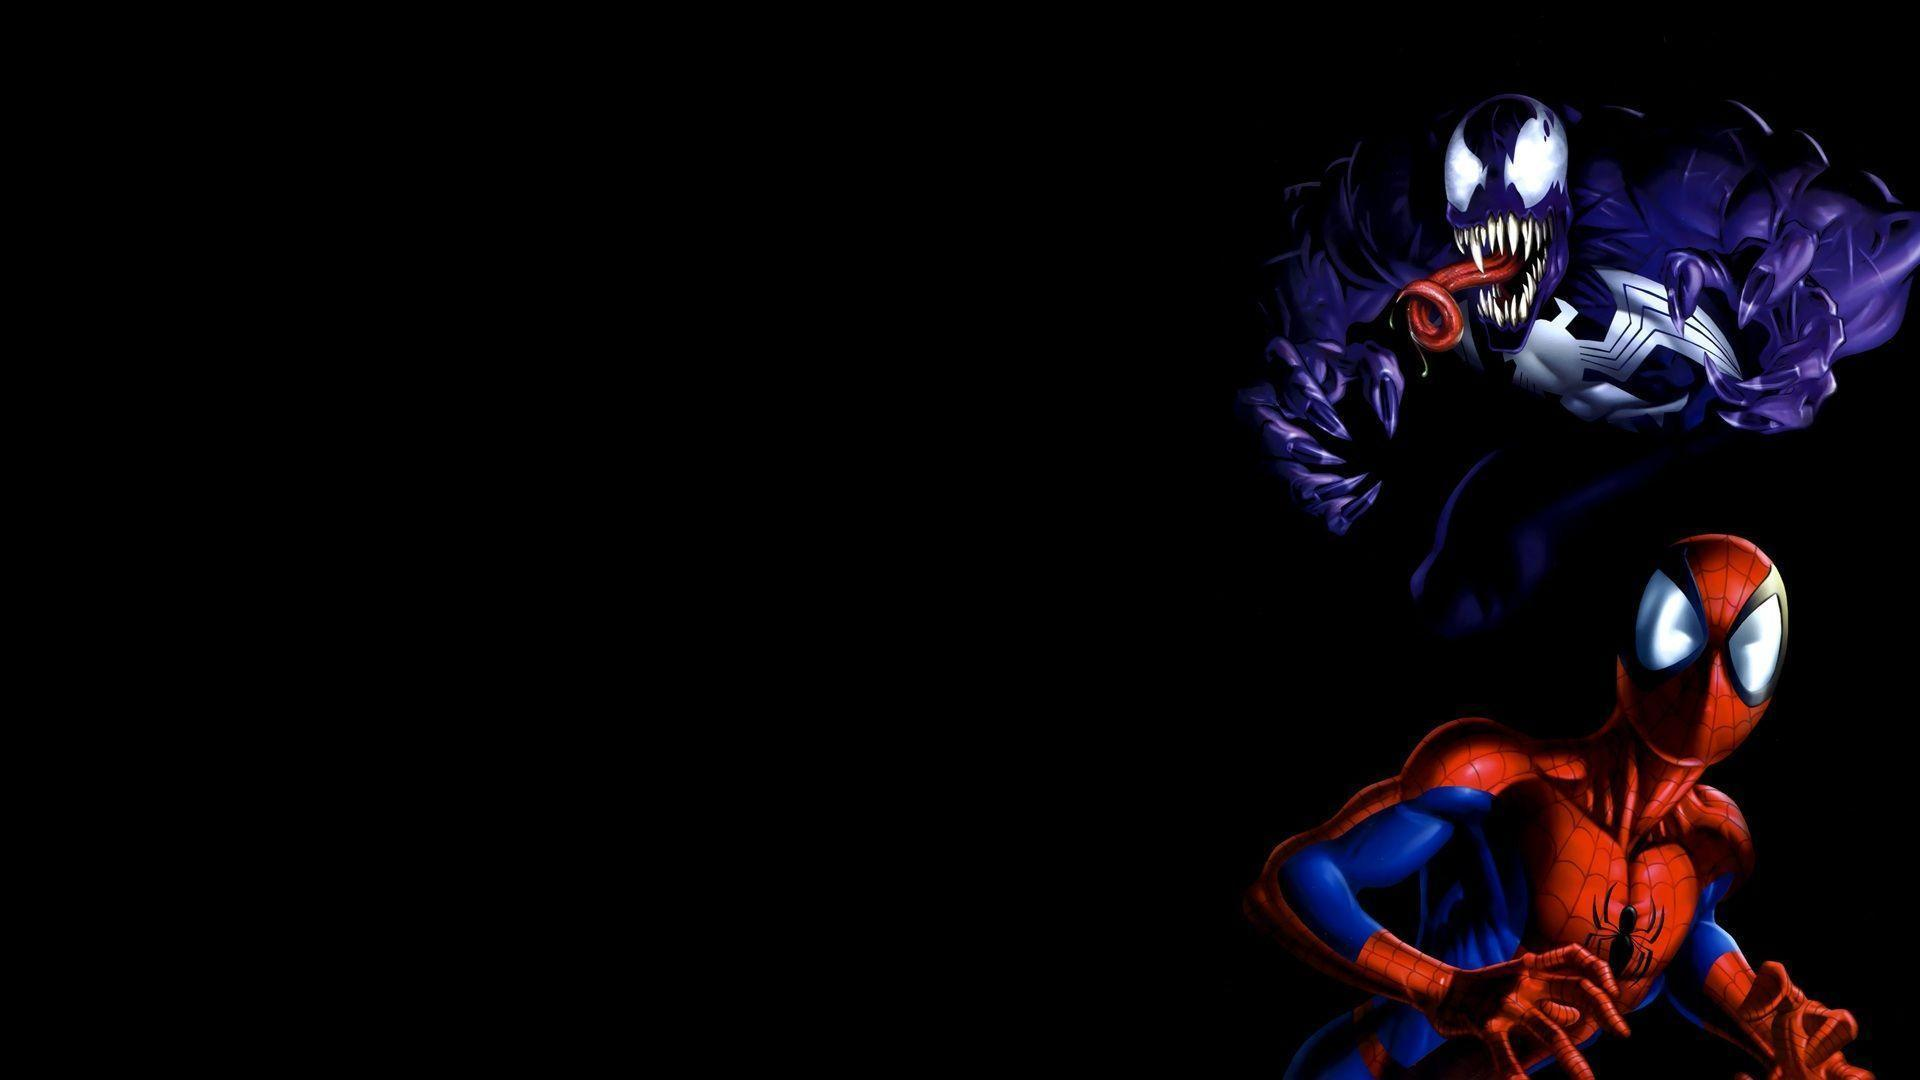 Spiderman Venom Wallpapers - Wallpaper Cave